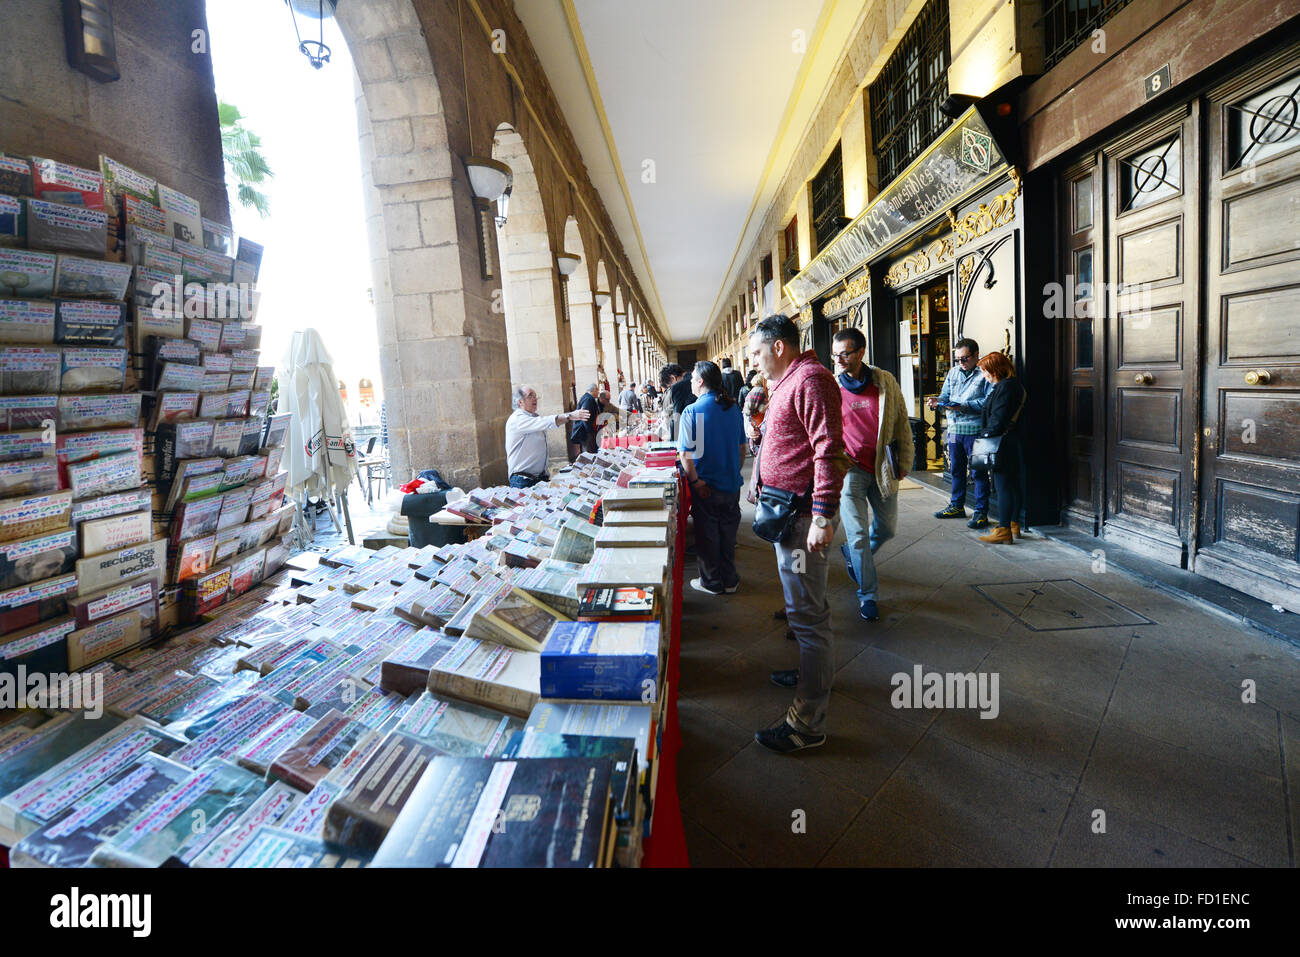 2nd hand books, records and antiques sold on Sunday's in Bilbao's Plaza Nueva - Stock Image